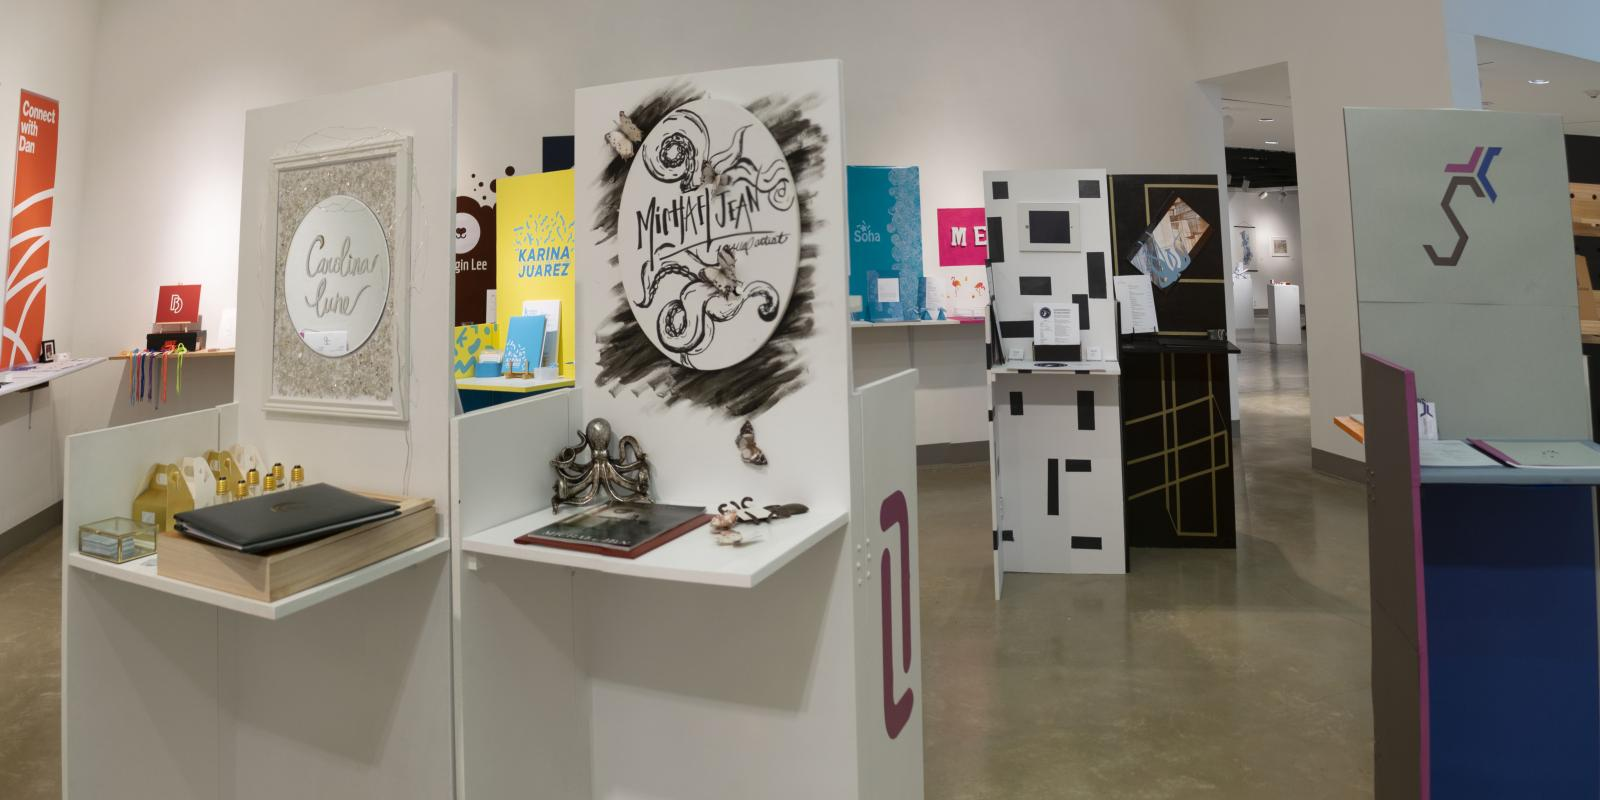 Senior Portfolio area at front of gallery, Exhibition: PolyKroma 2019, Apr.27, 2019 to May 19, 2019, Co-curated by Michele Cairella Fillmore & Sooyun Im, W. Keith & Janet Kellogg Art Gallery, Cal Poly Pomona.